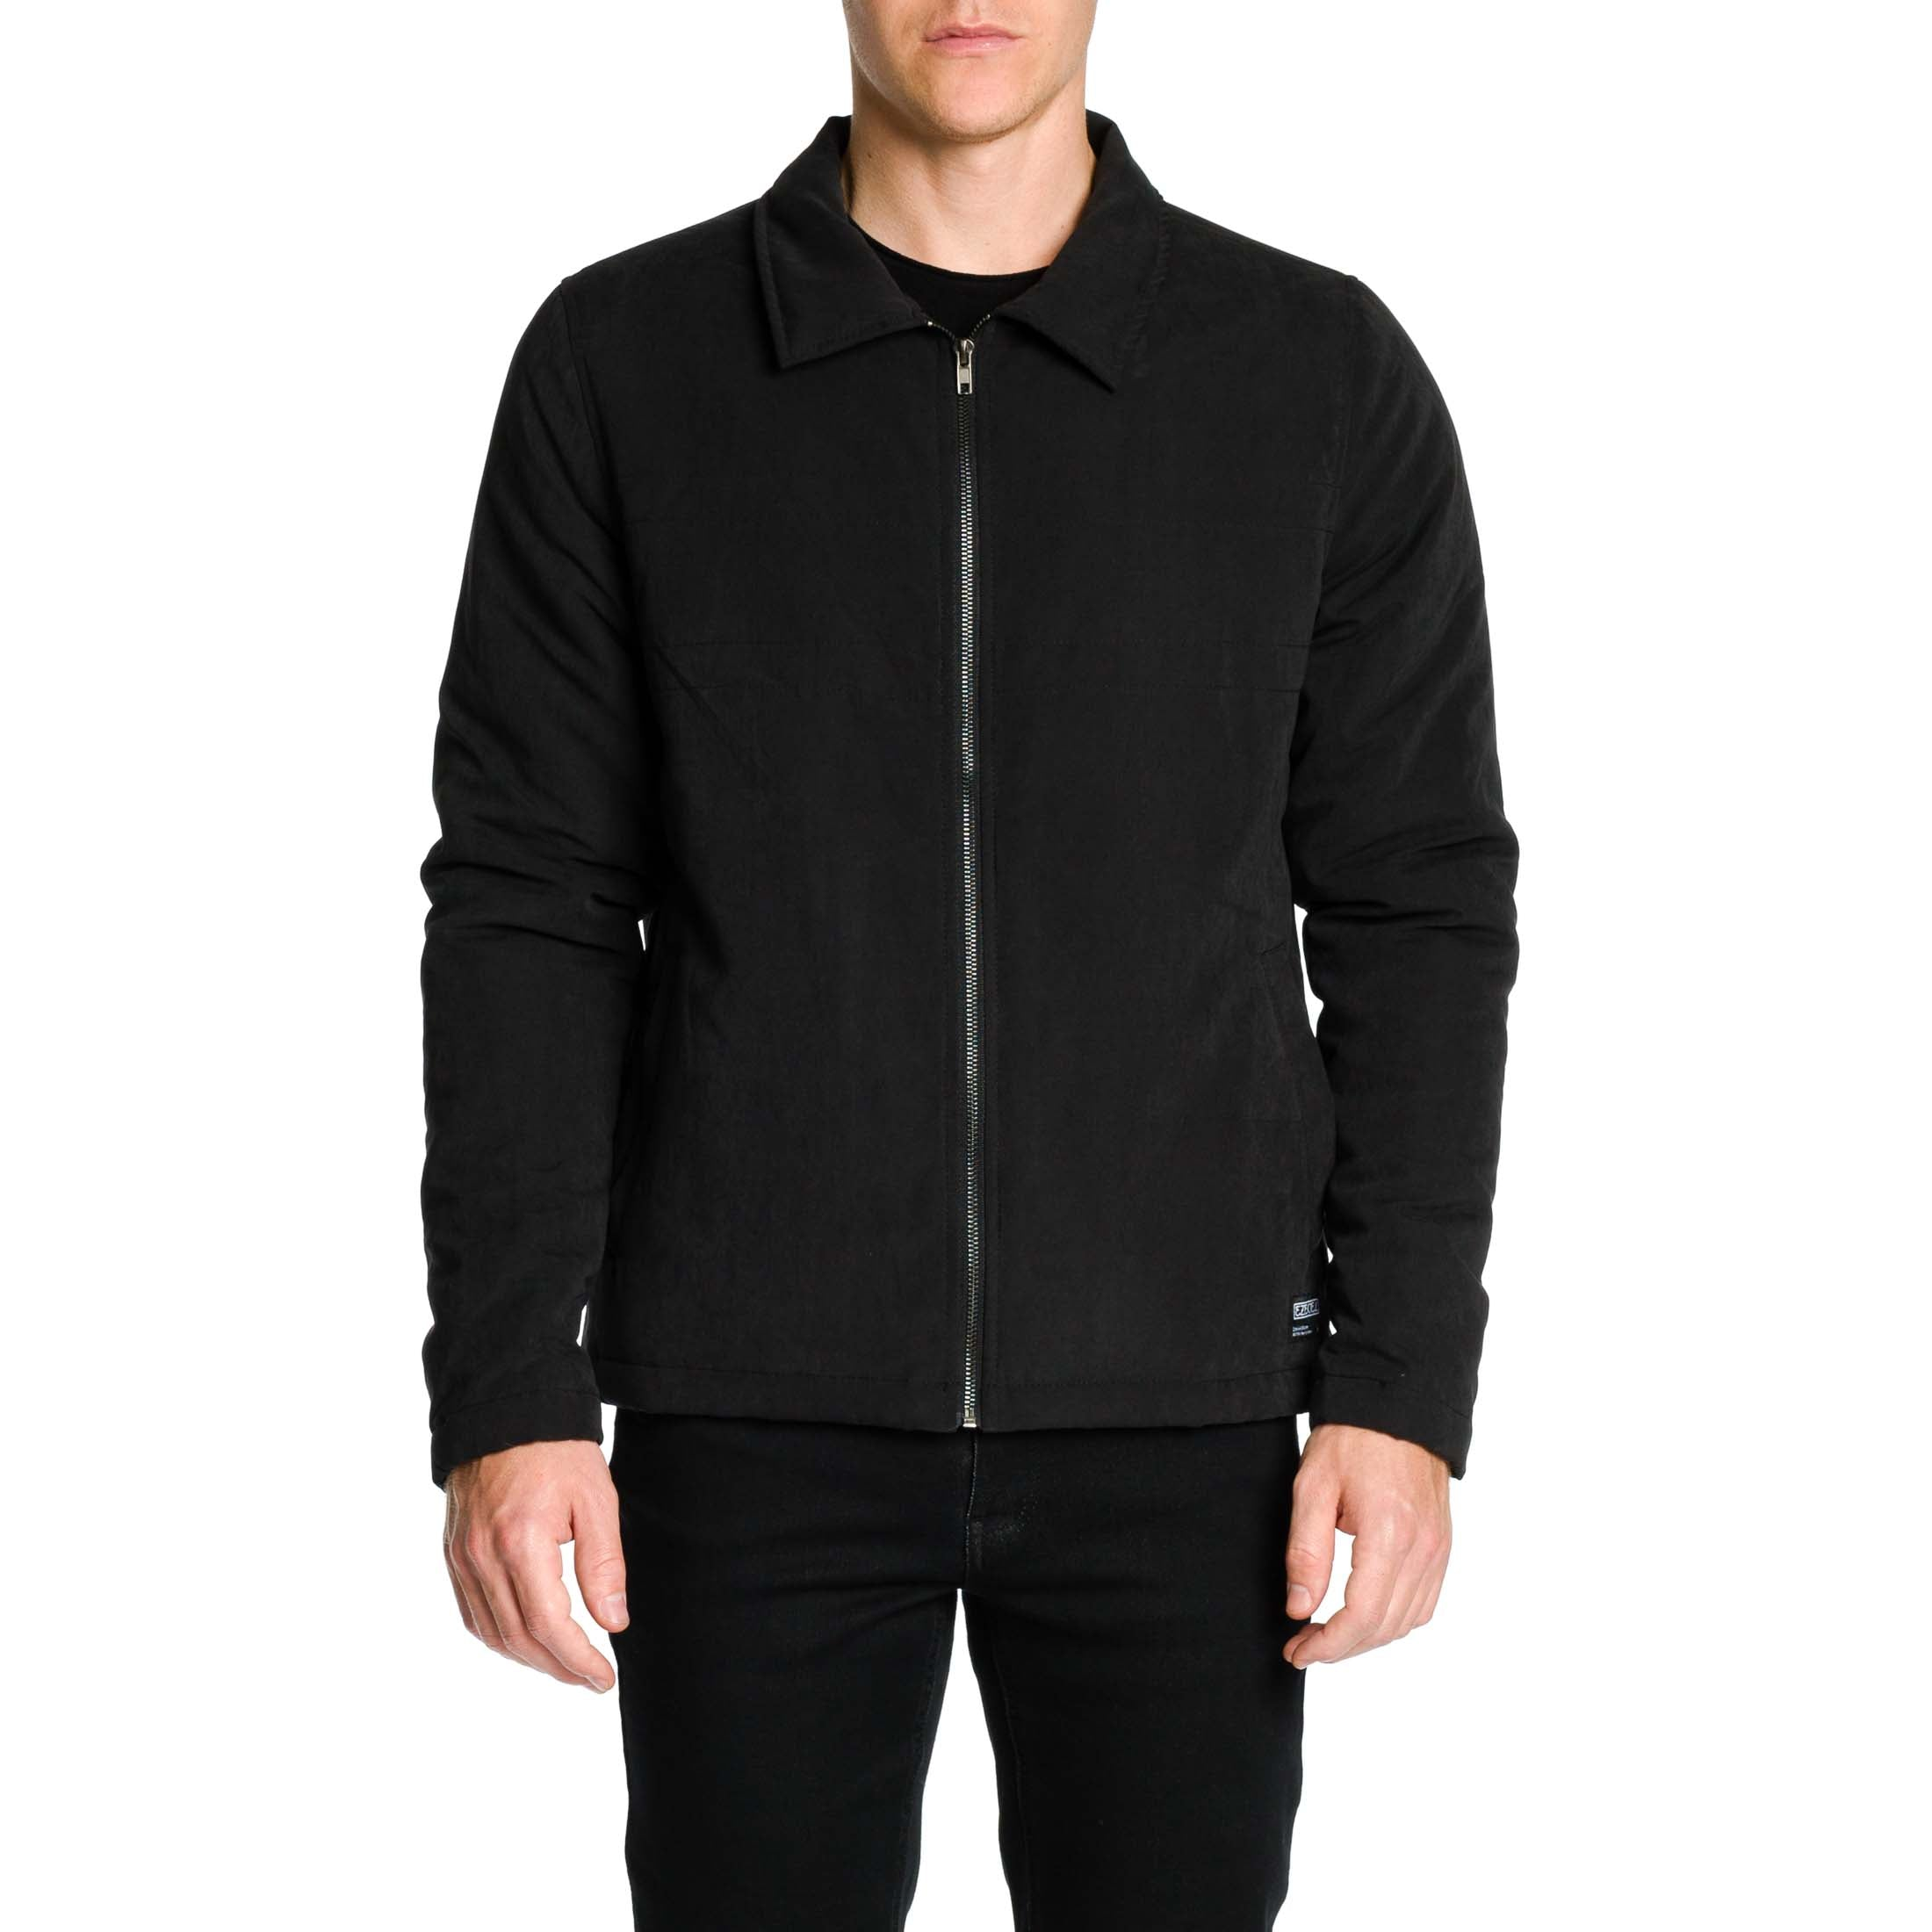 Navigate Jacket - Black - Ezekiel Clothing